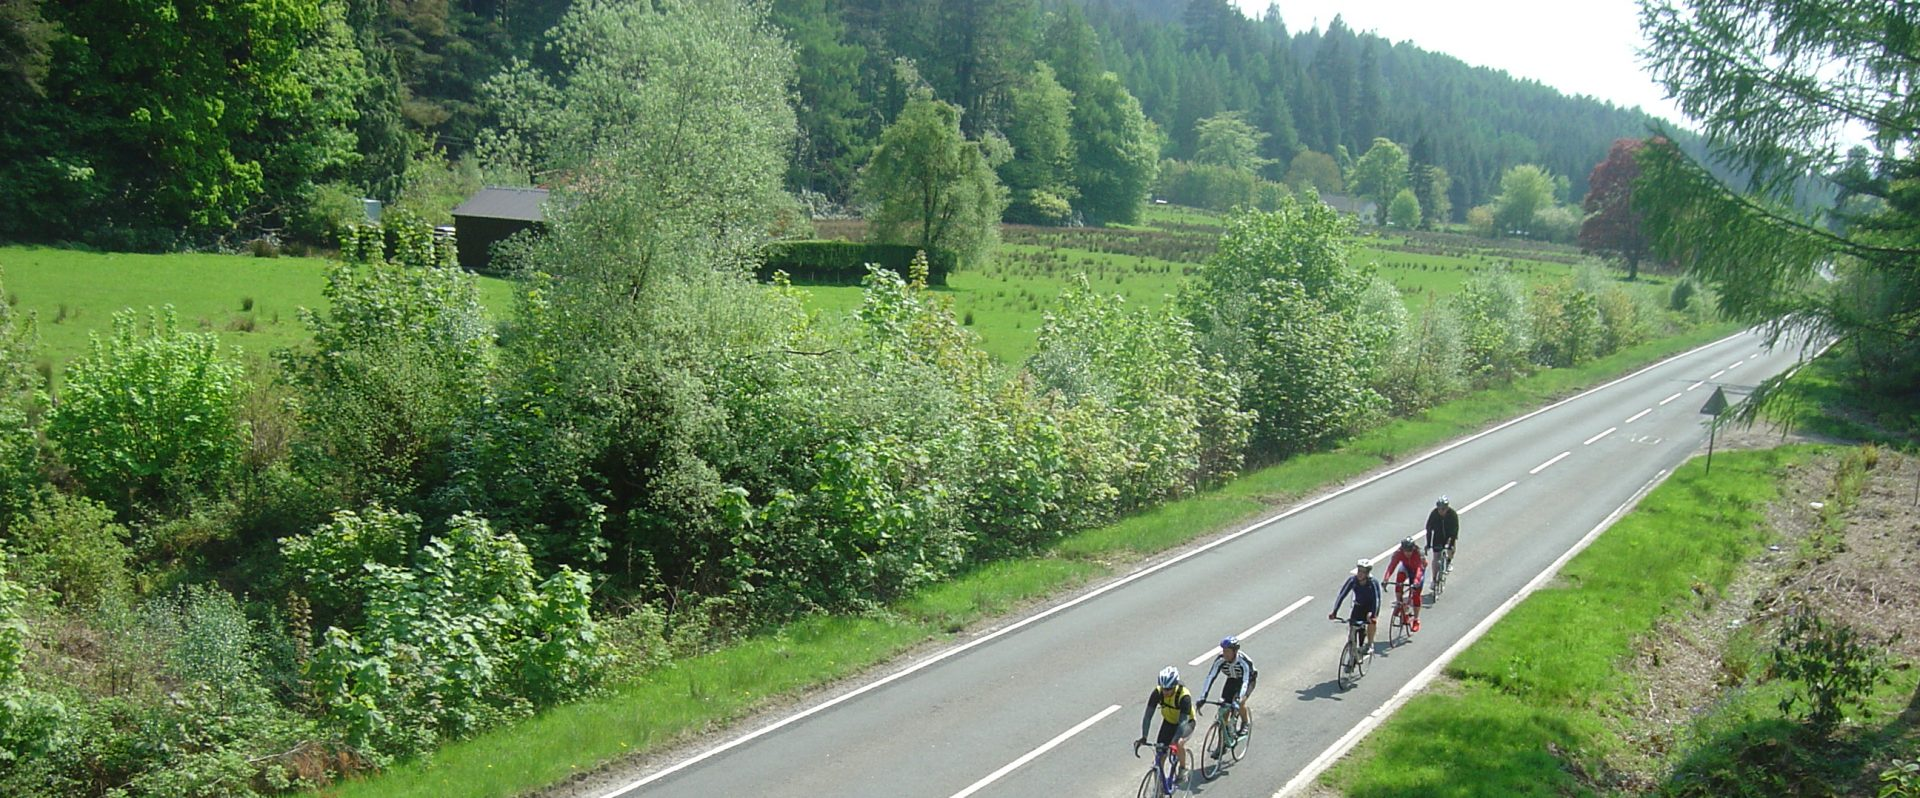 Cyclists on a road